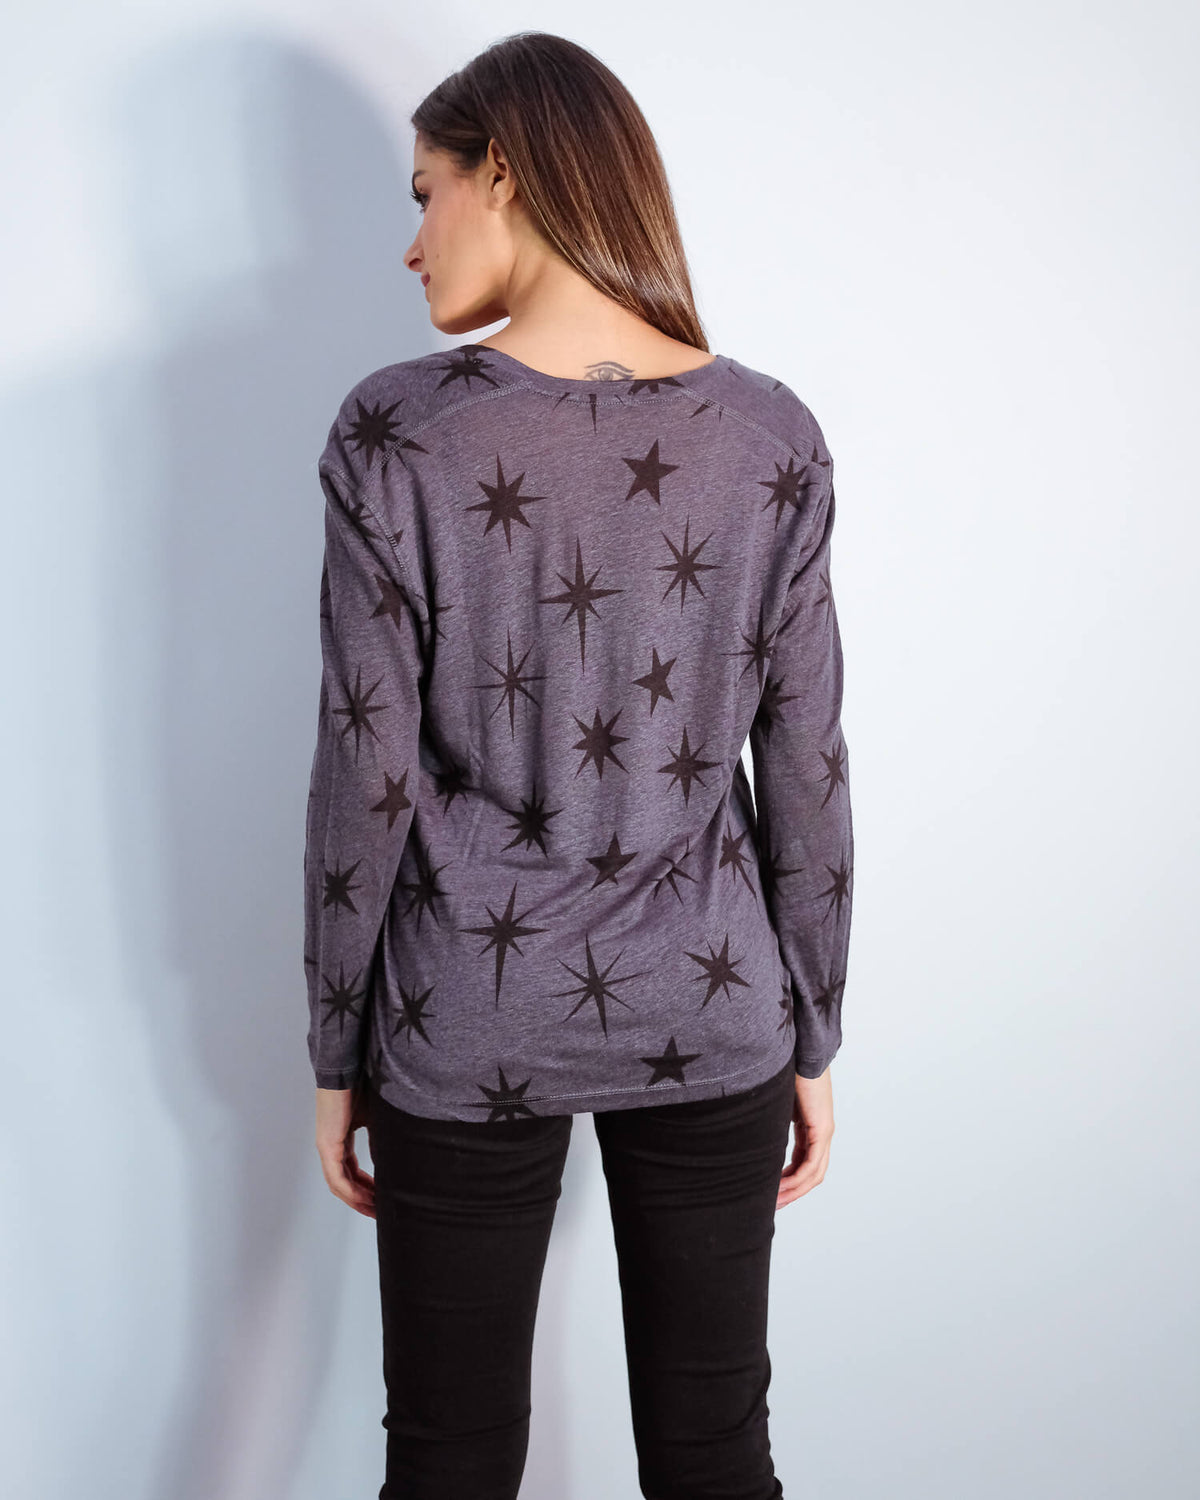 R Sami top in charcoal